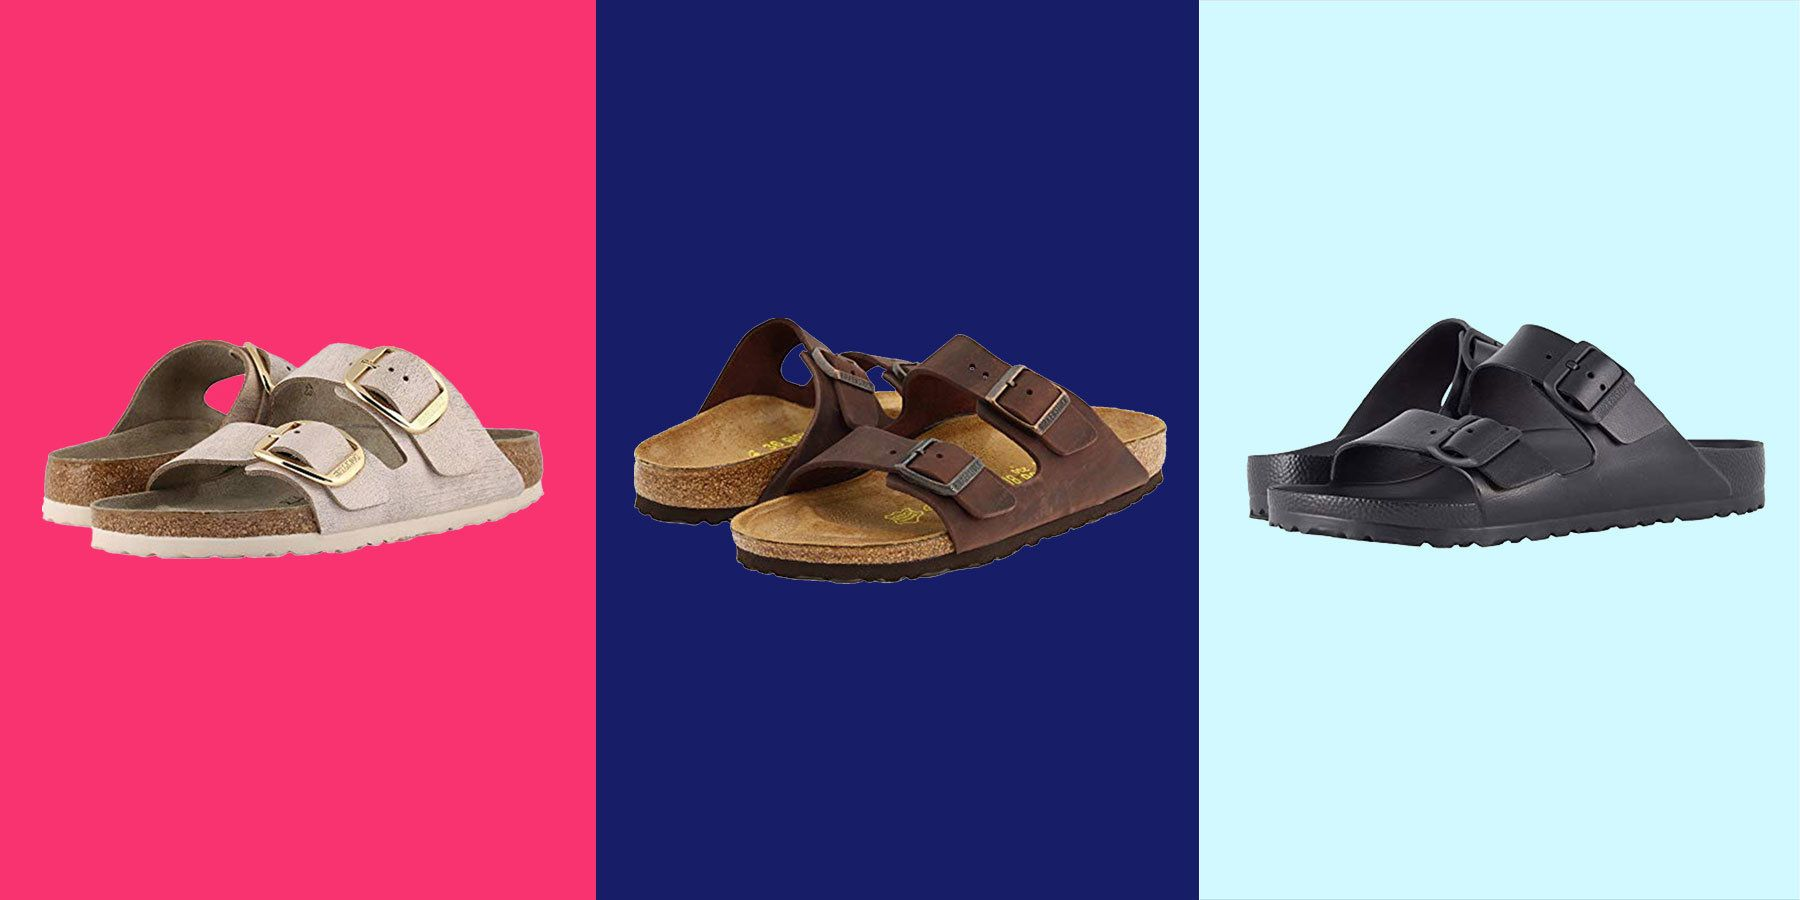 Zappos' best-selling sandal is the Birkenstock.